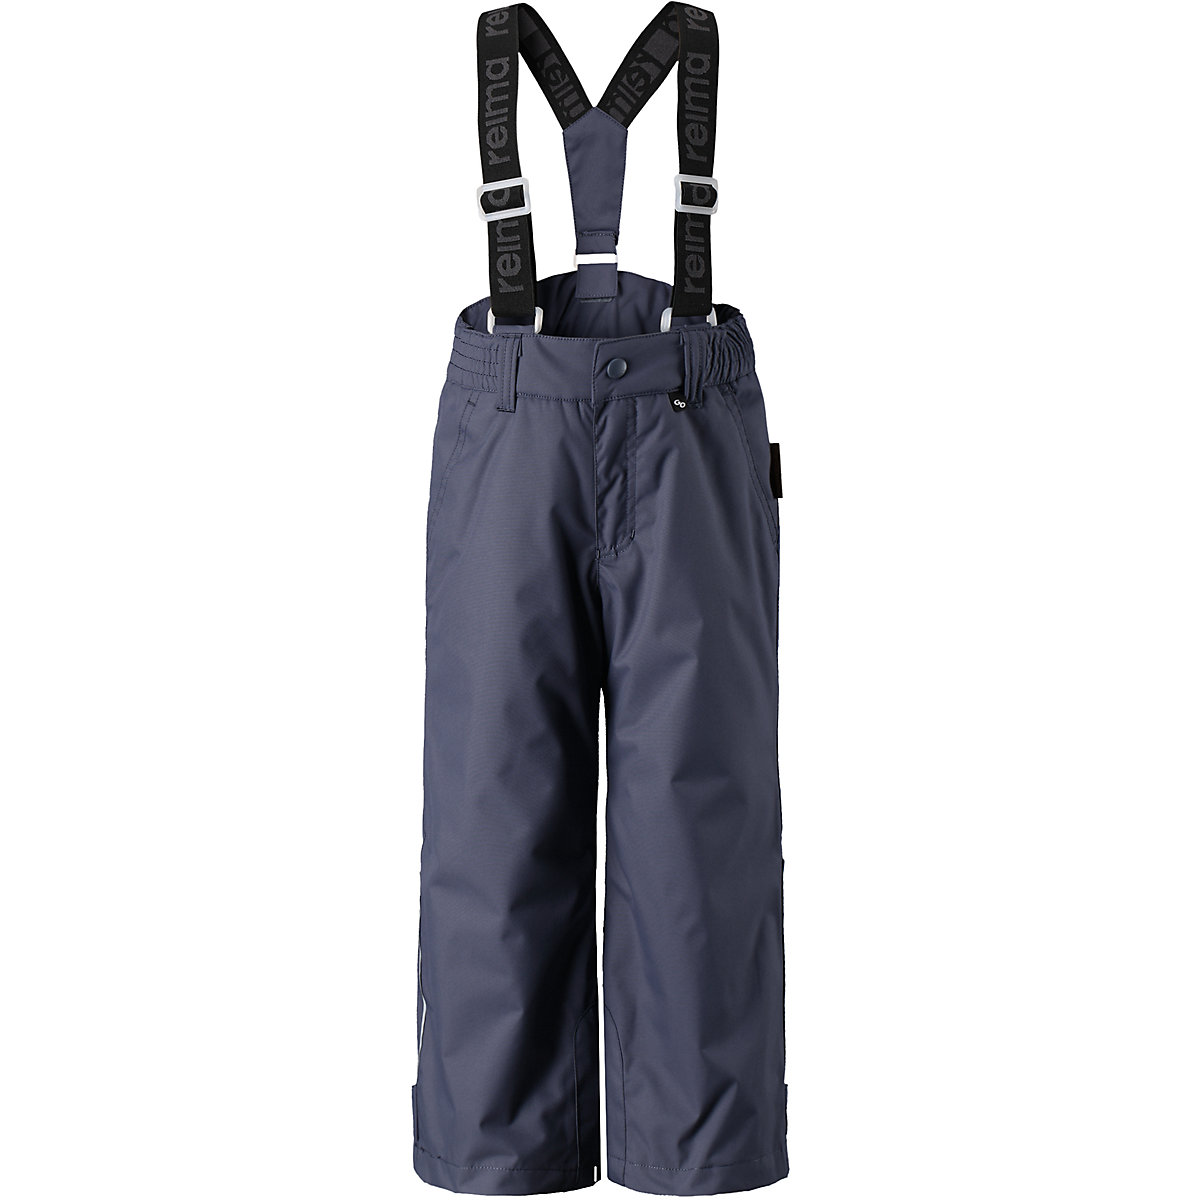 Pants & Capris Reima 8689367 for boys and girls polyester autumn winter monton 113129289 outdoor cycling polyester short pants for men black l